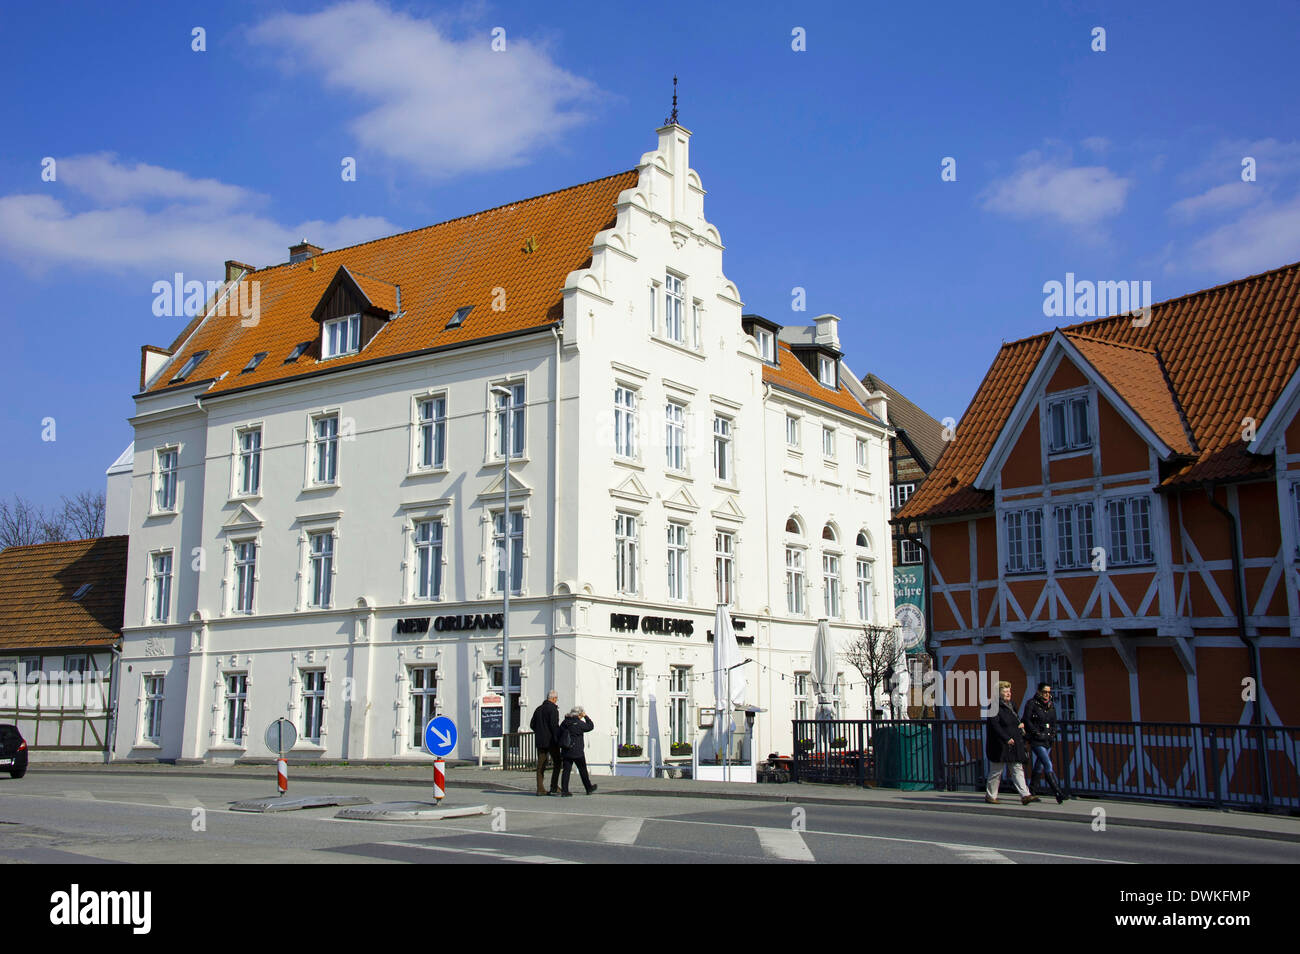 Hotel New Orleans, Wismar - Stock Image